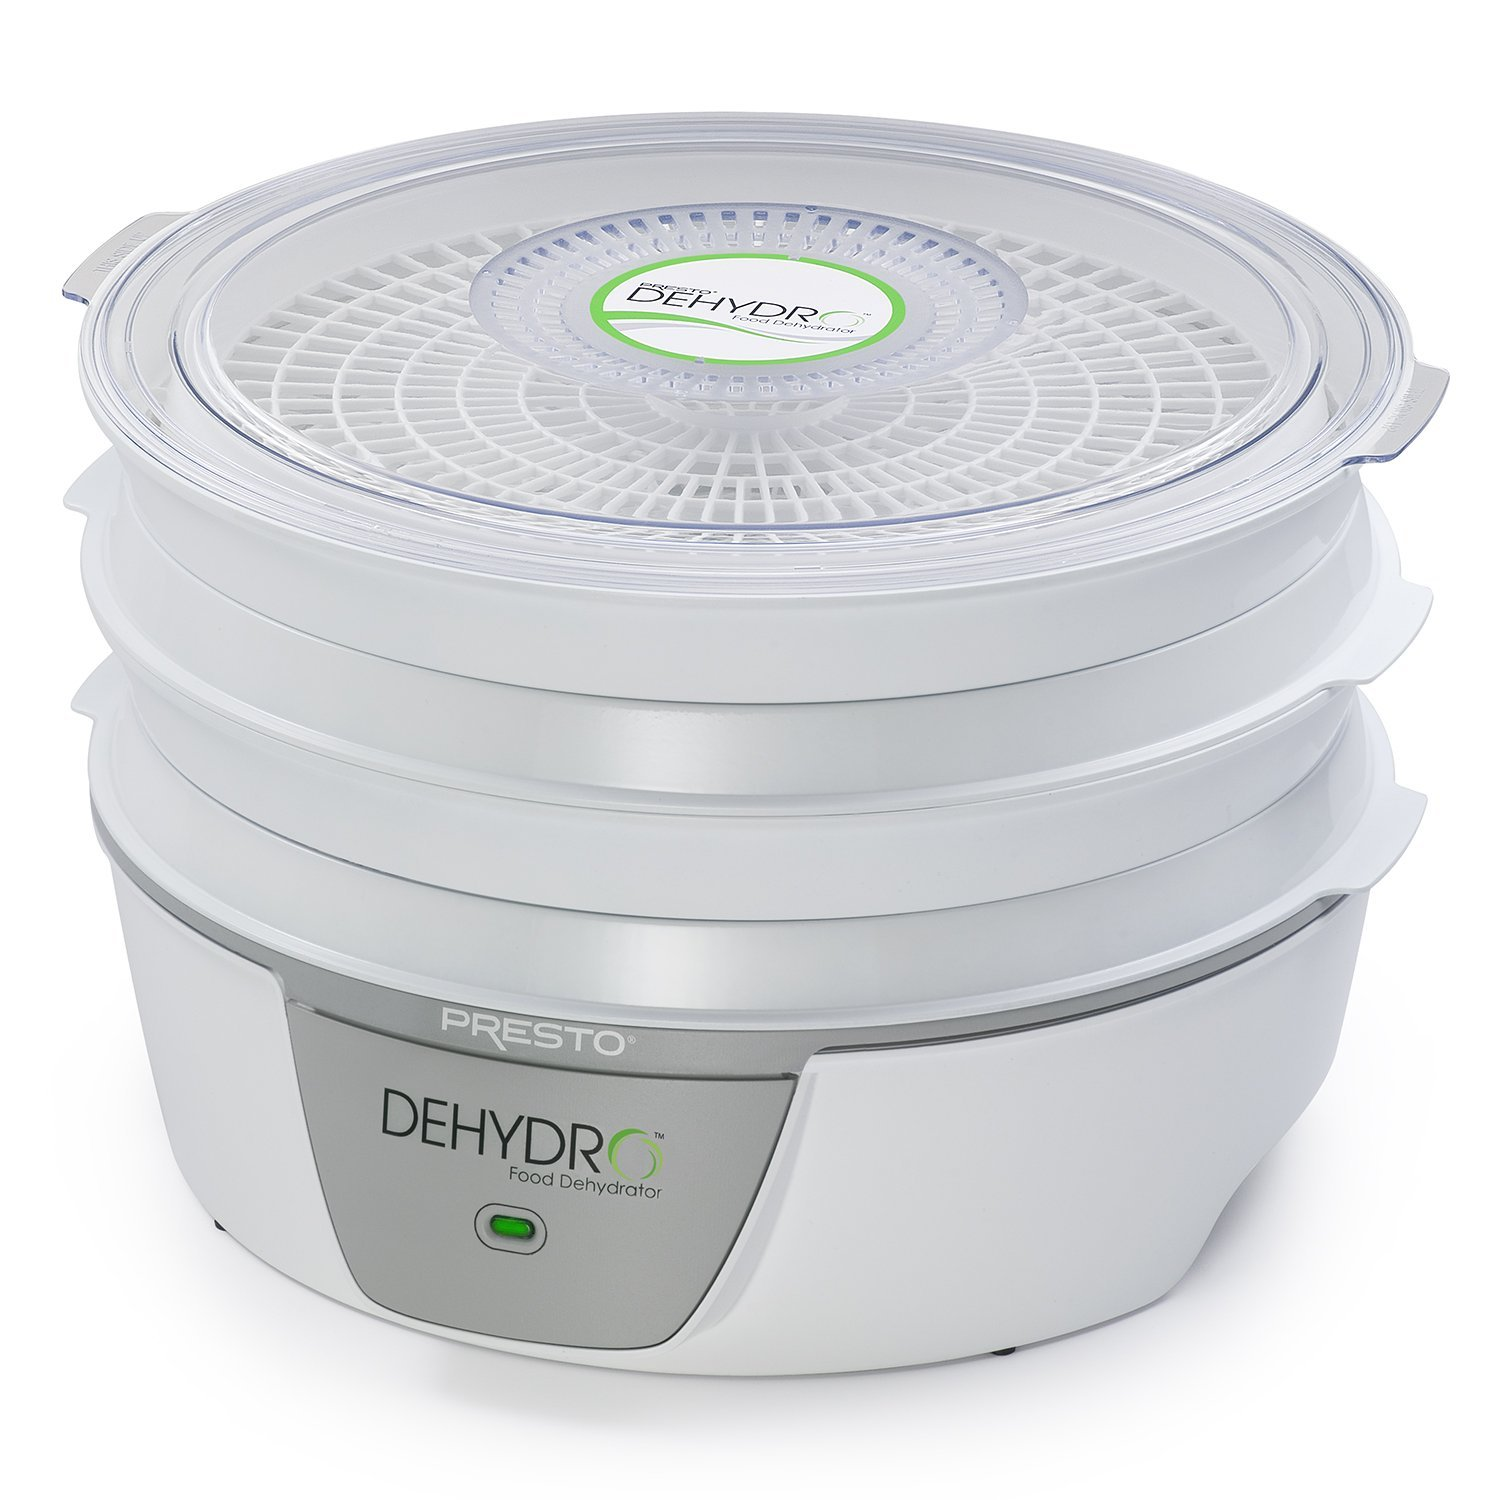 presto 06300 dehydrator review